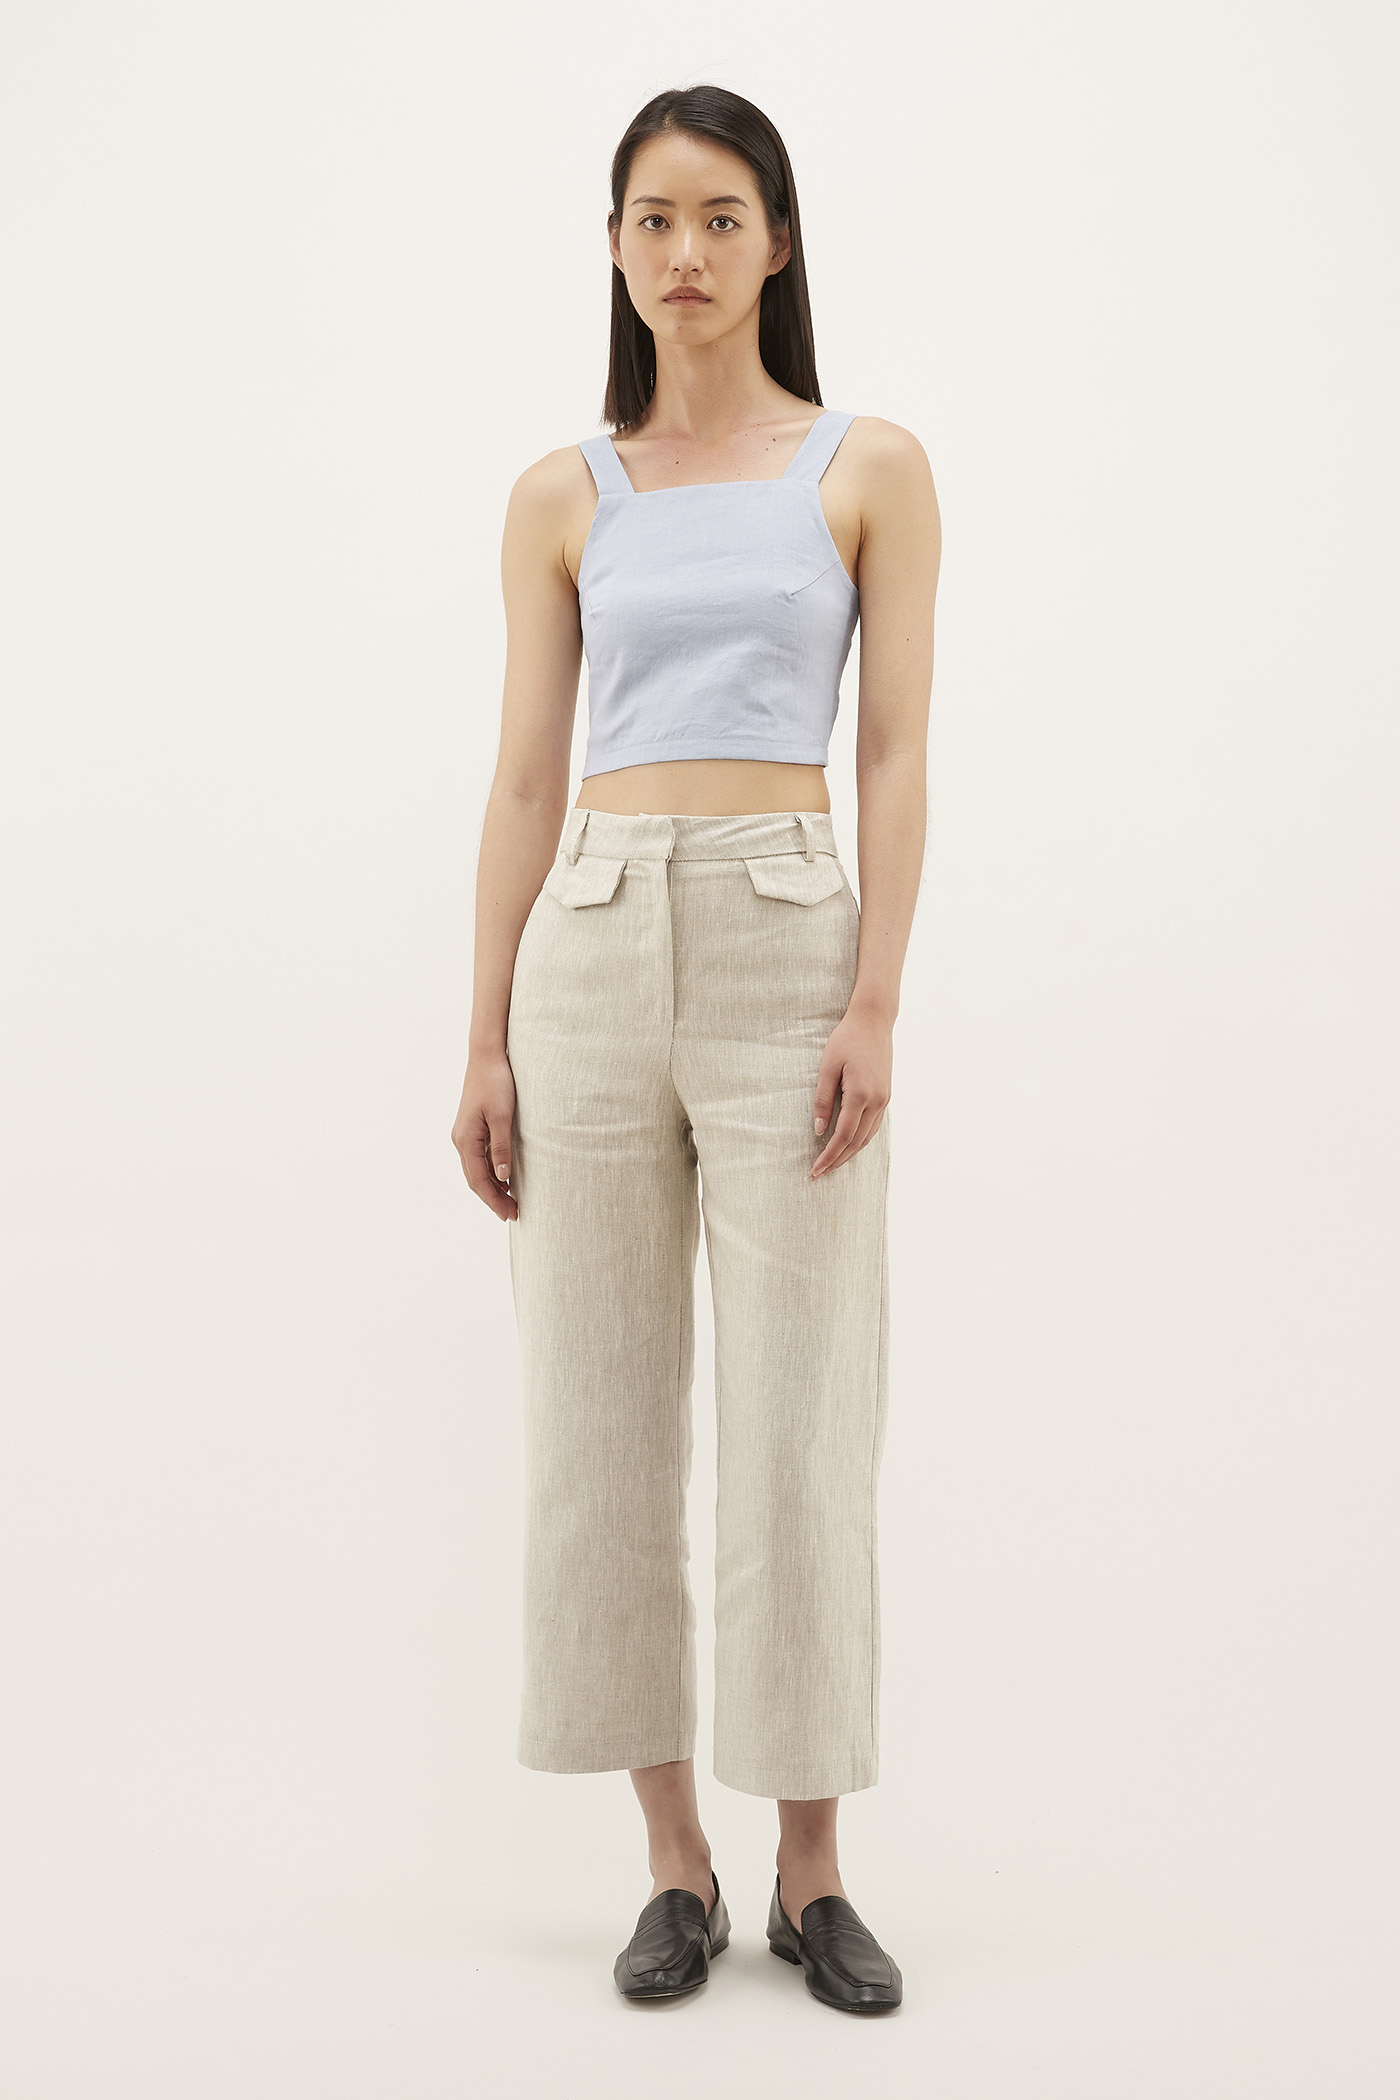 Meira Crop Top